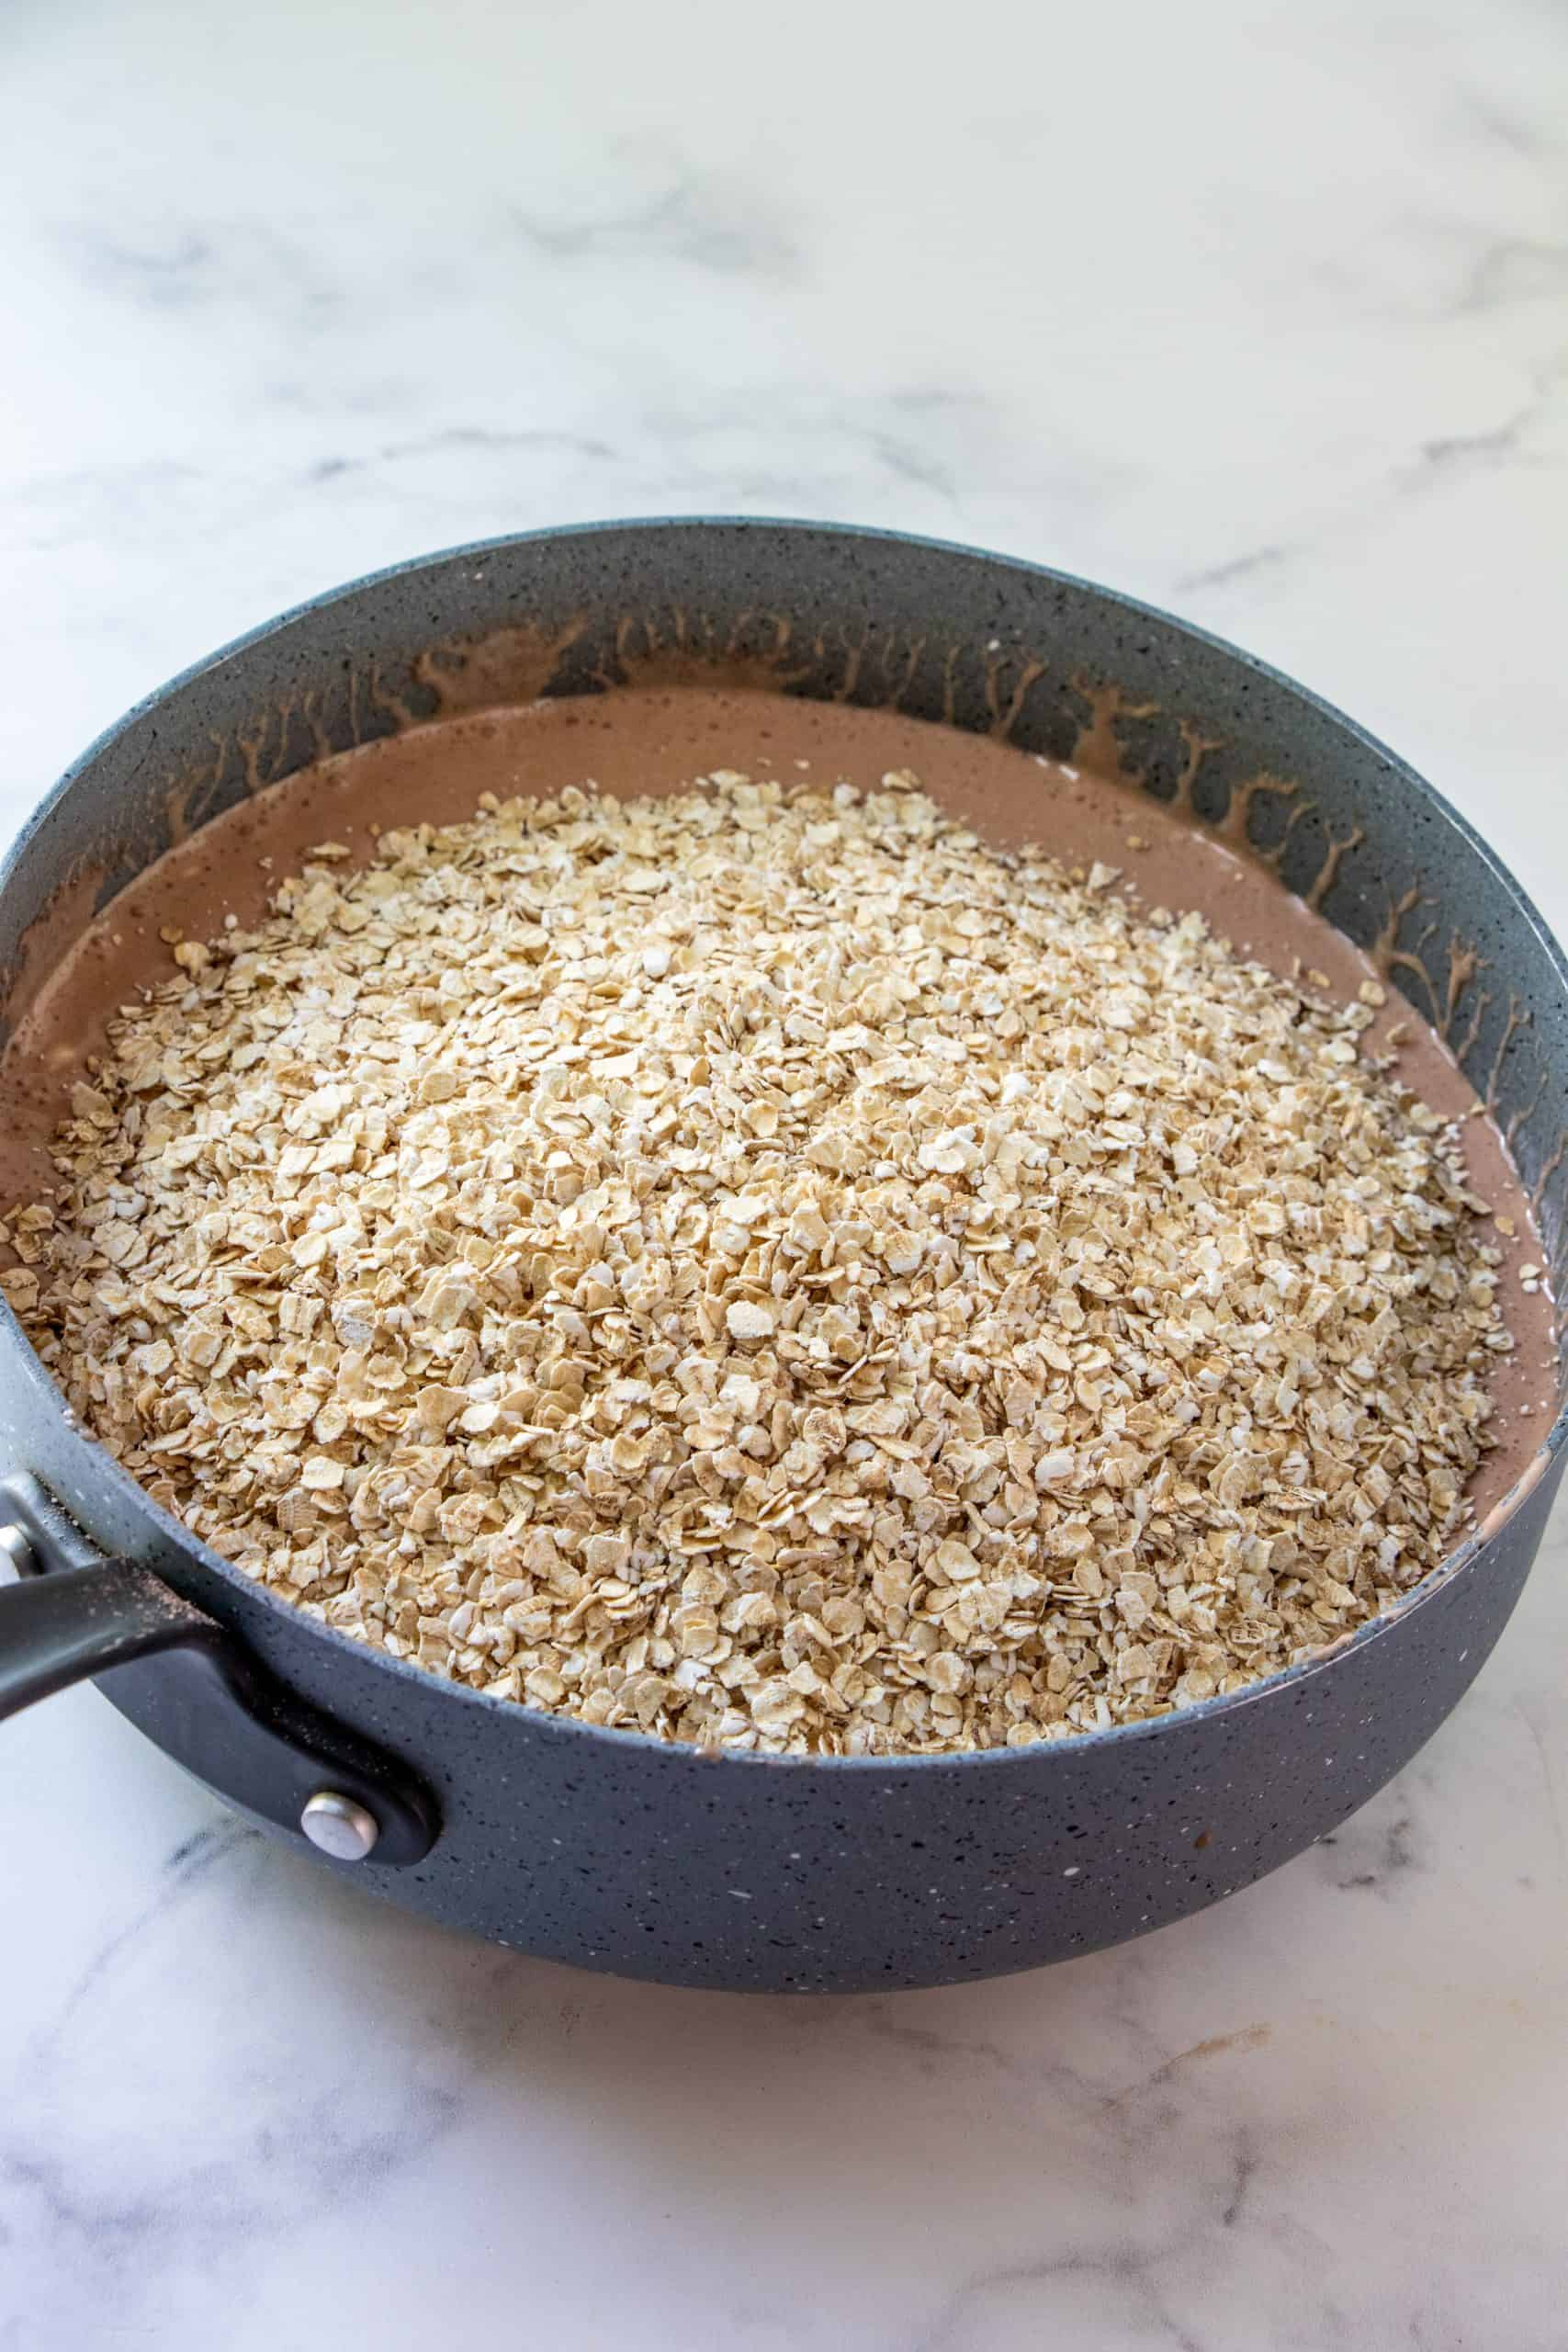 quick cooking oatmeal added to the chocolate fluff mixture in a large sauce pan.